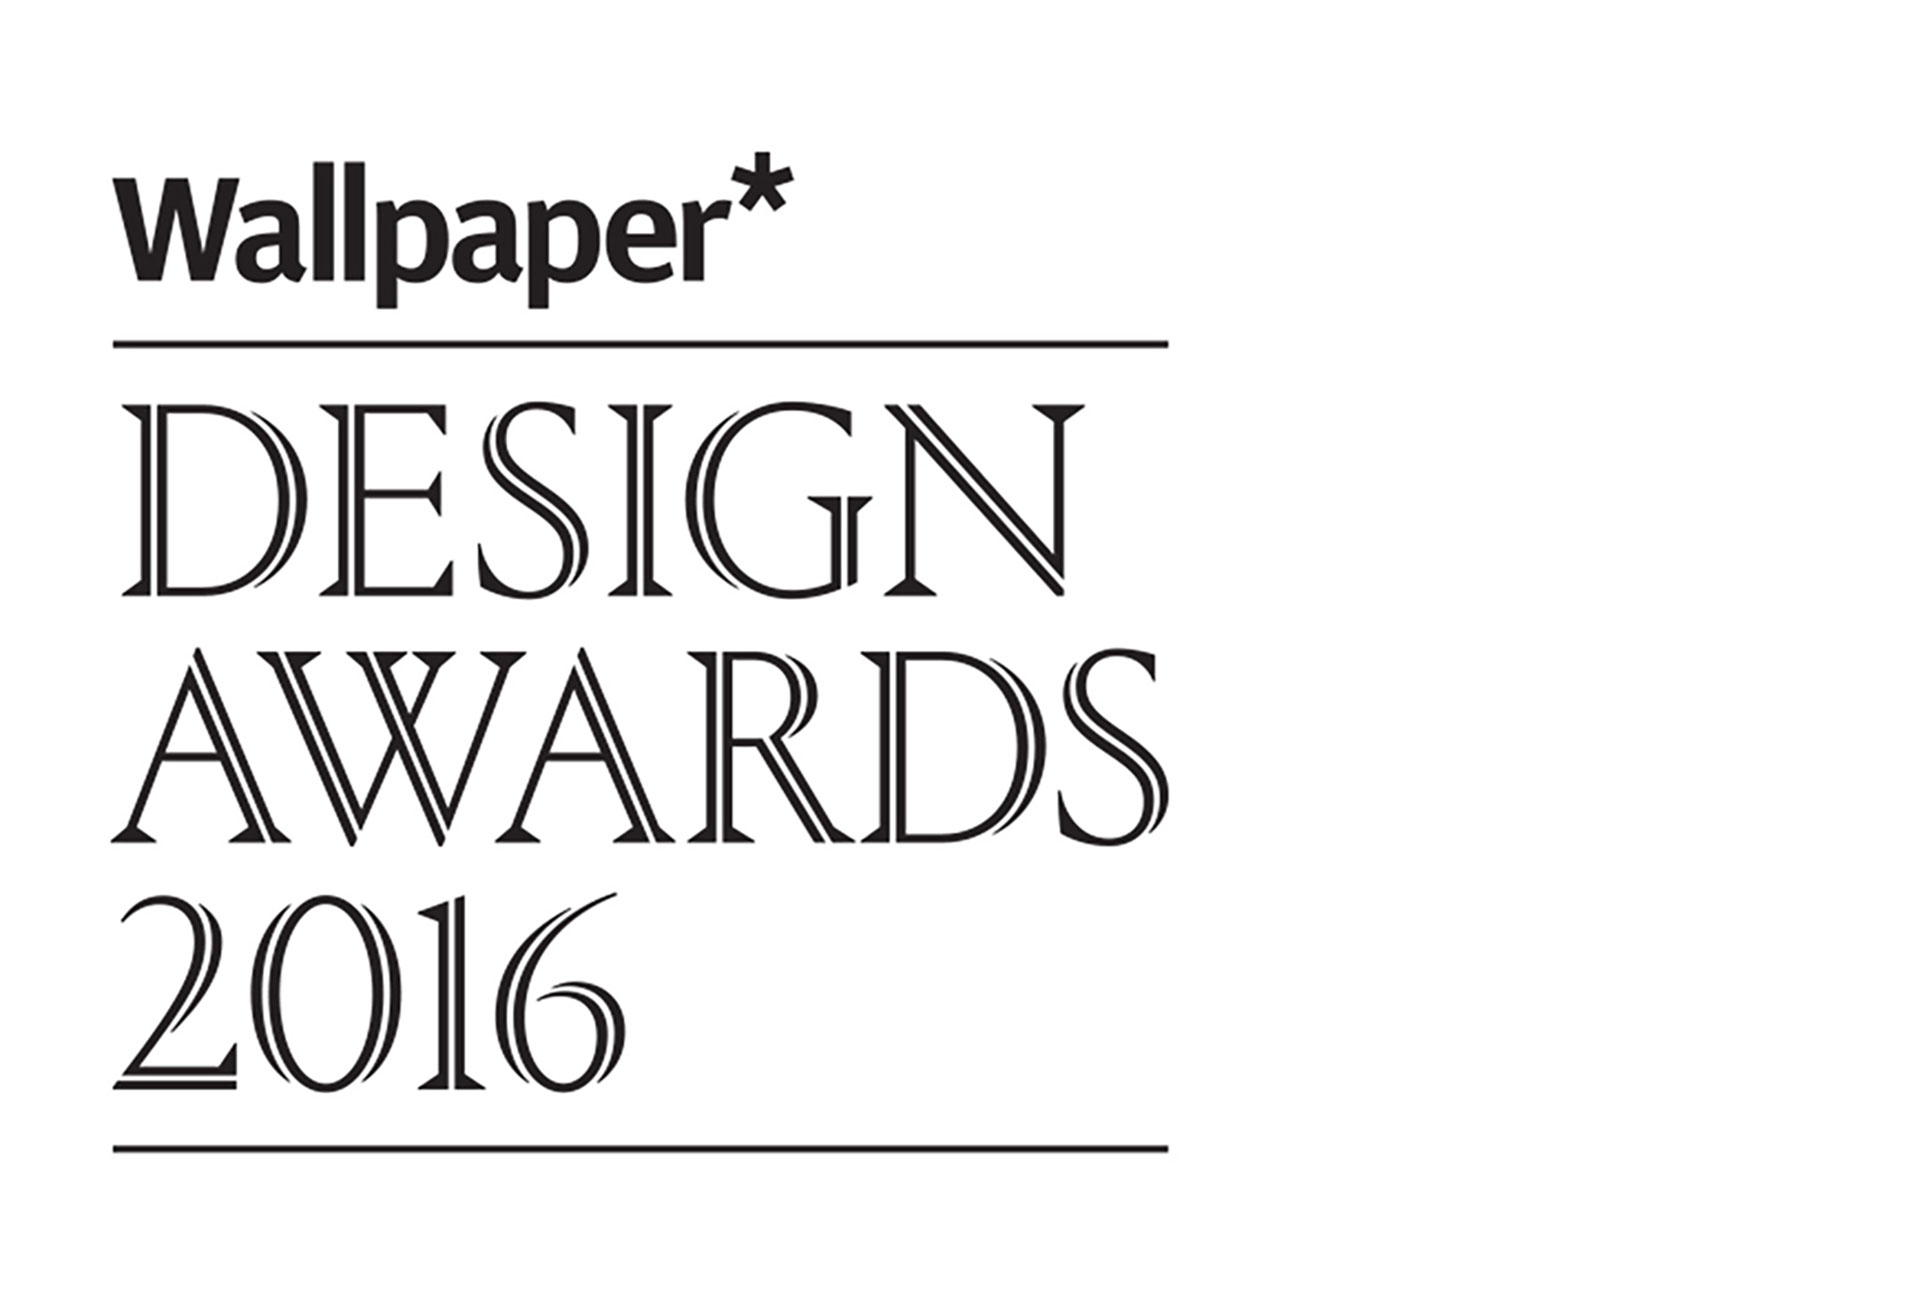 DESIGN AWARD 2016: AND THE WINNER IS...